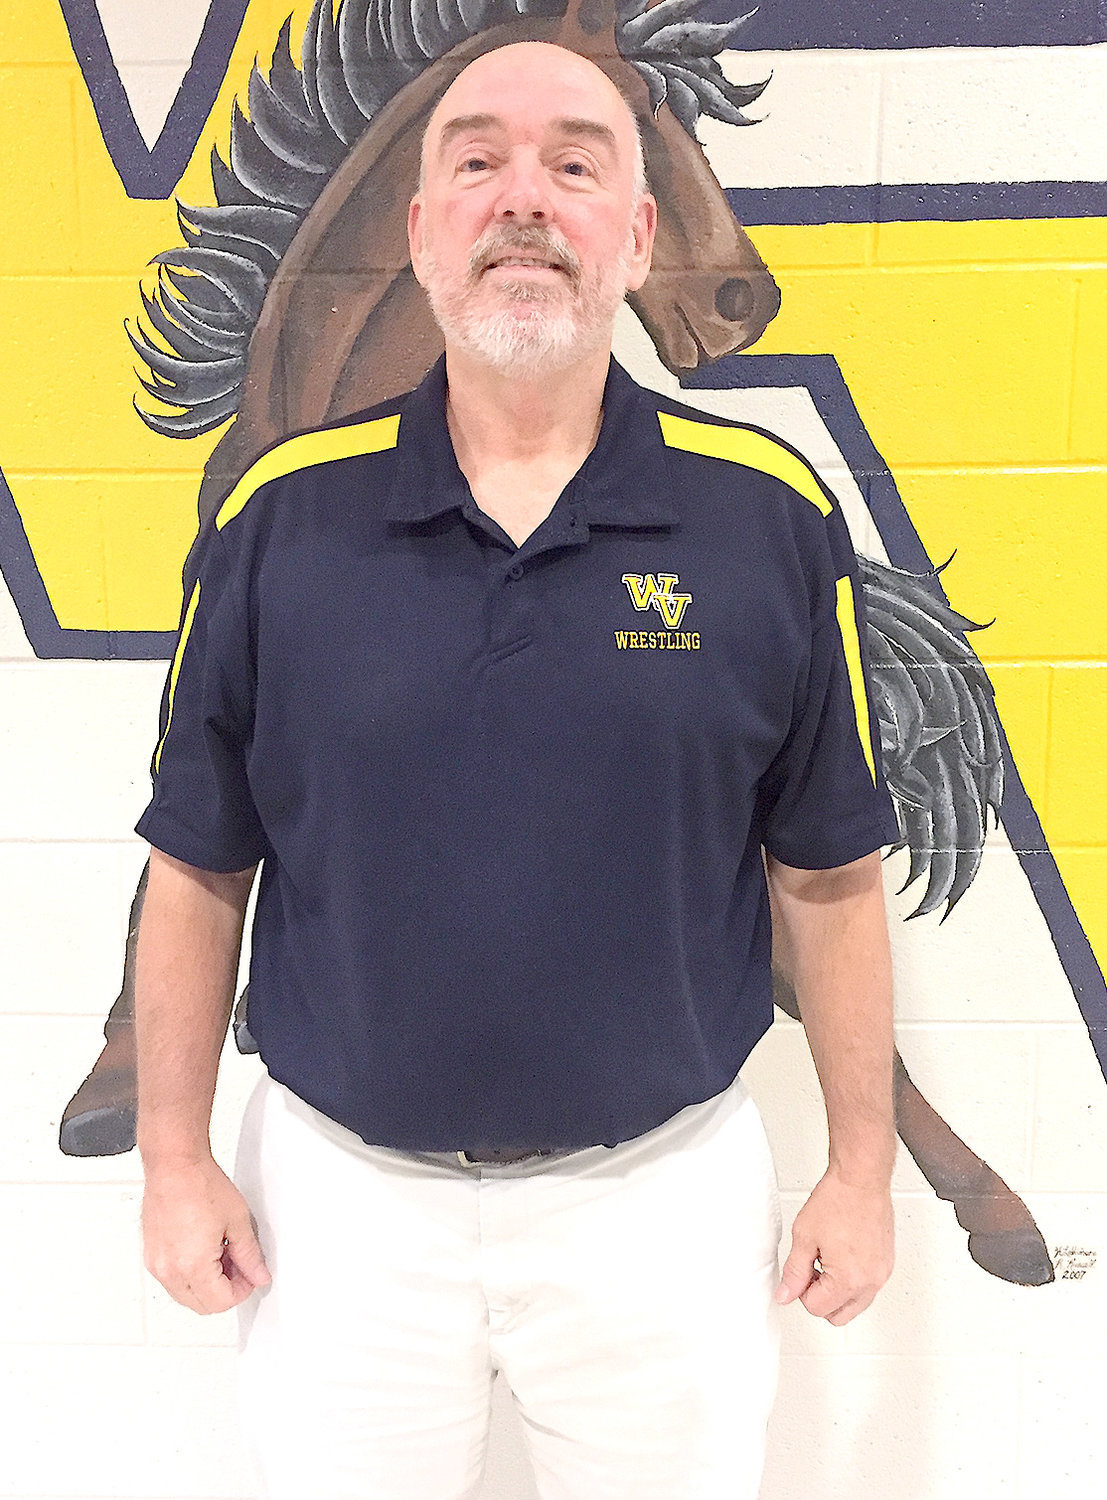 WALKER VALLEY MUSTANG head wrestling coach Alan Morris will be inducted into the Tennessee Chapter of the National Wrestling Hall of Fame on Aug. 24, in Murfreesboro.